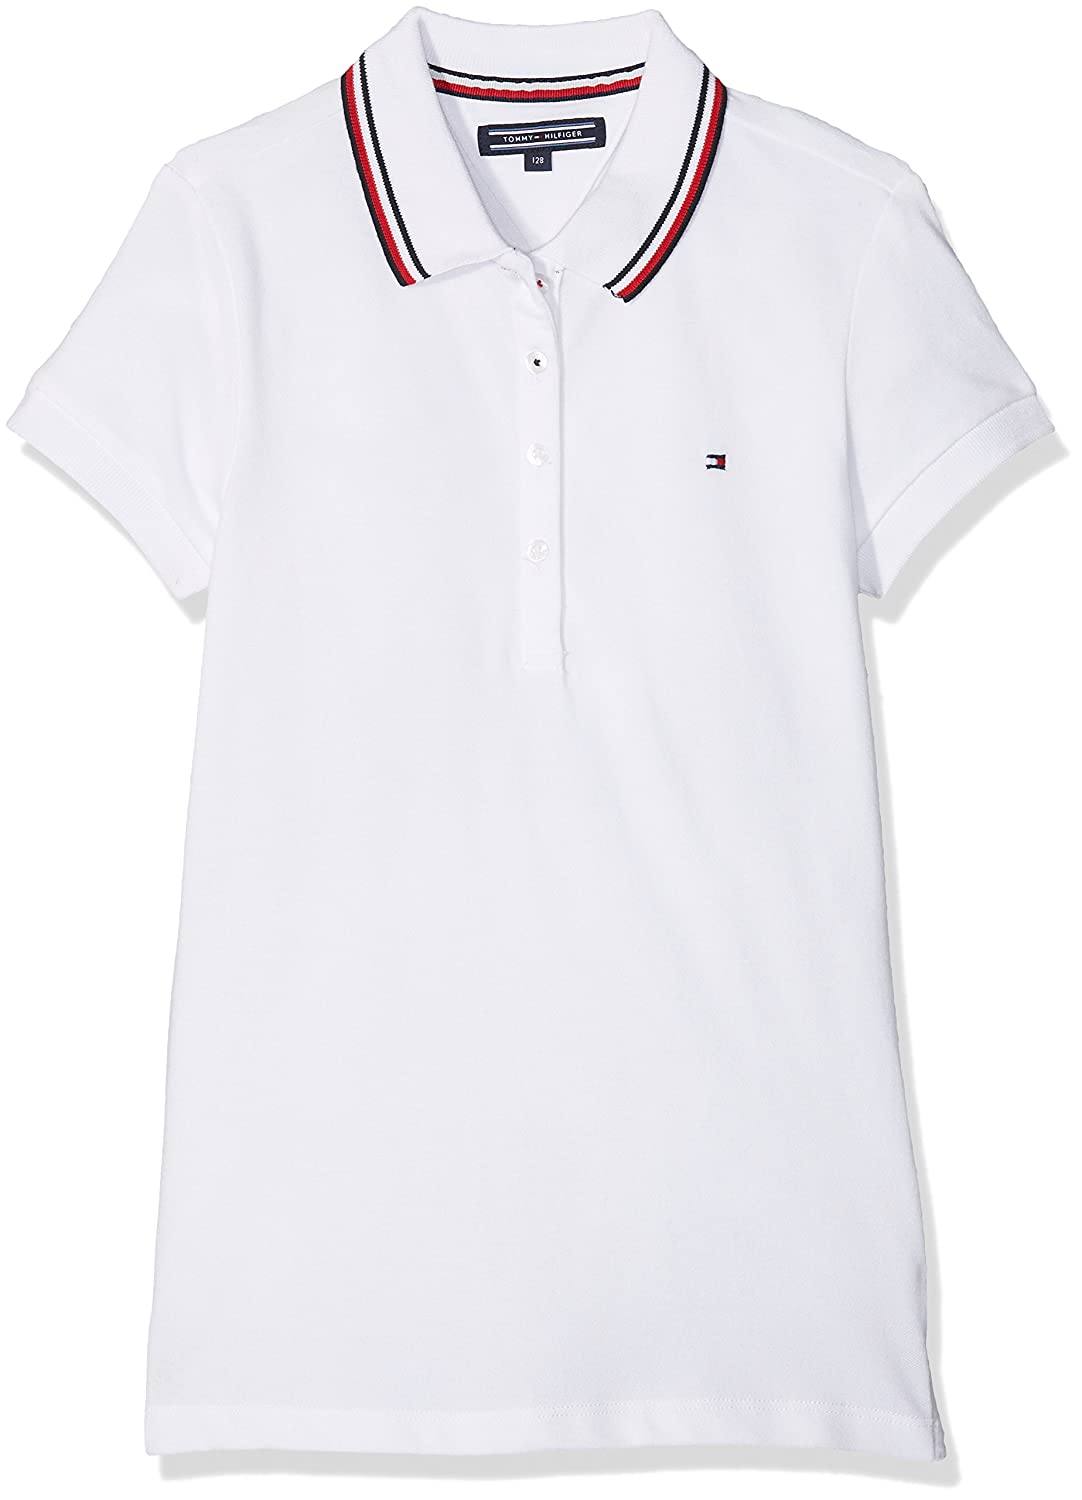 Tommy Hilfiger Girl's AME Sweet Polo S/S Shirt KG0KG03391